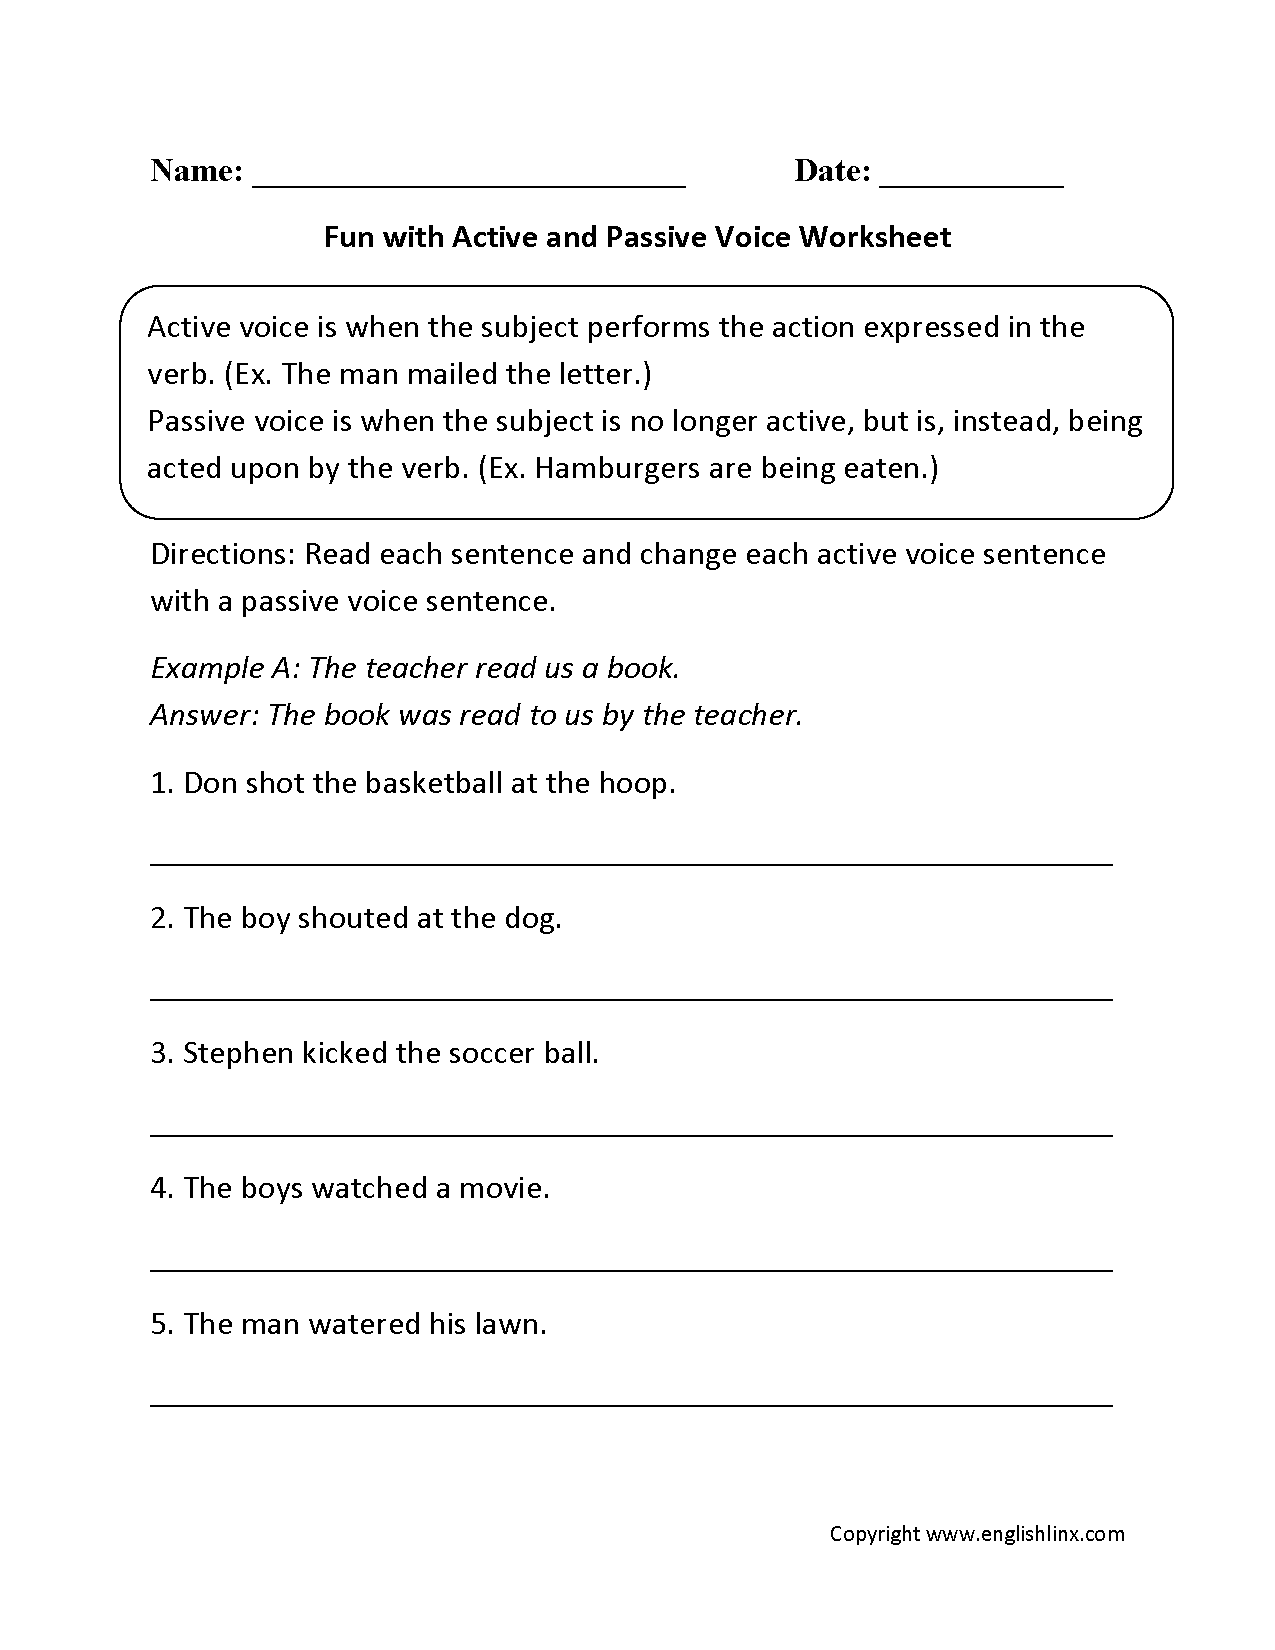 Worksheets 1000 Active Passive Sentences active verbs resume template action for englishlinx com and passive voice worksheets verbs